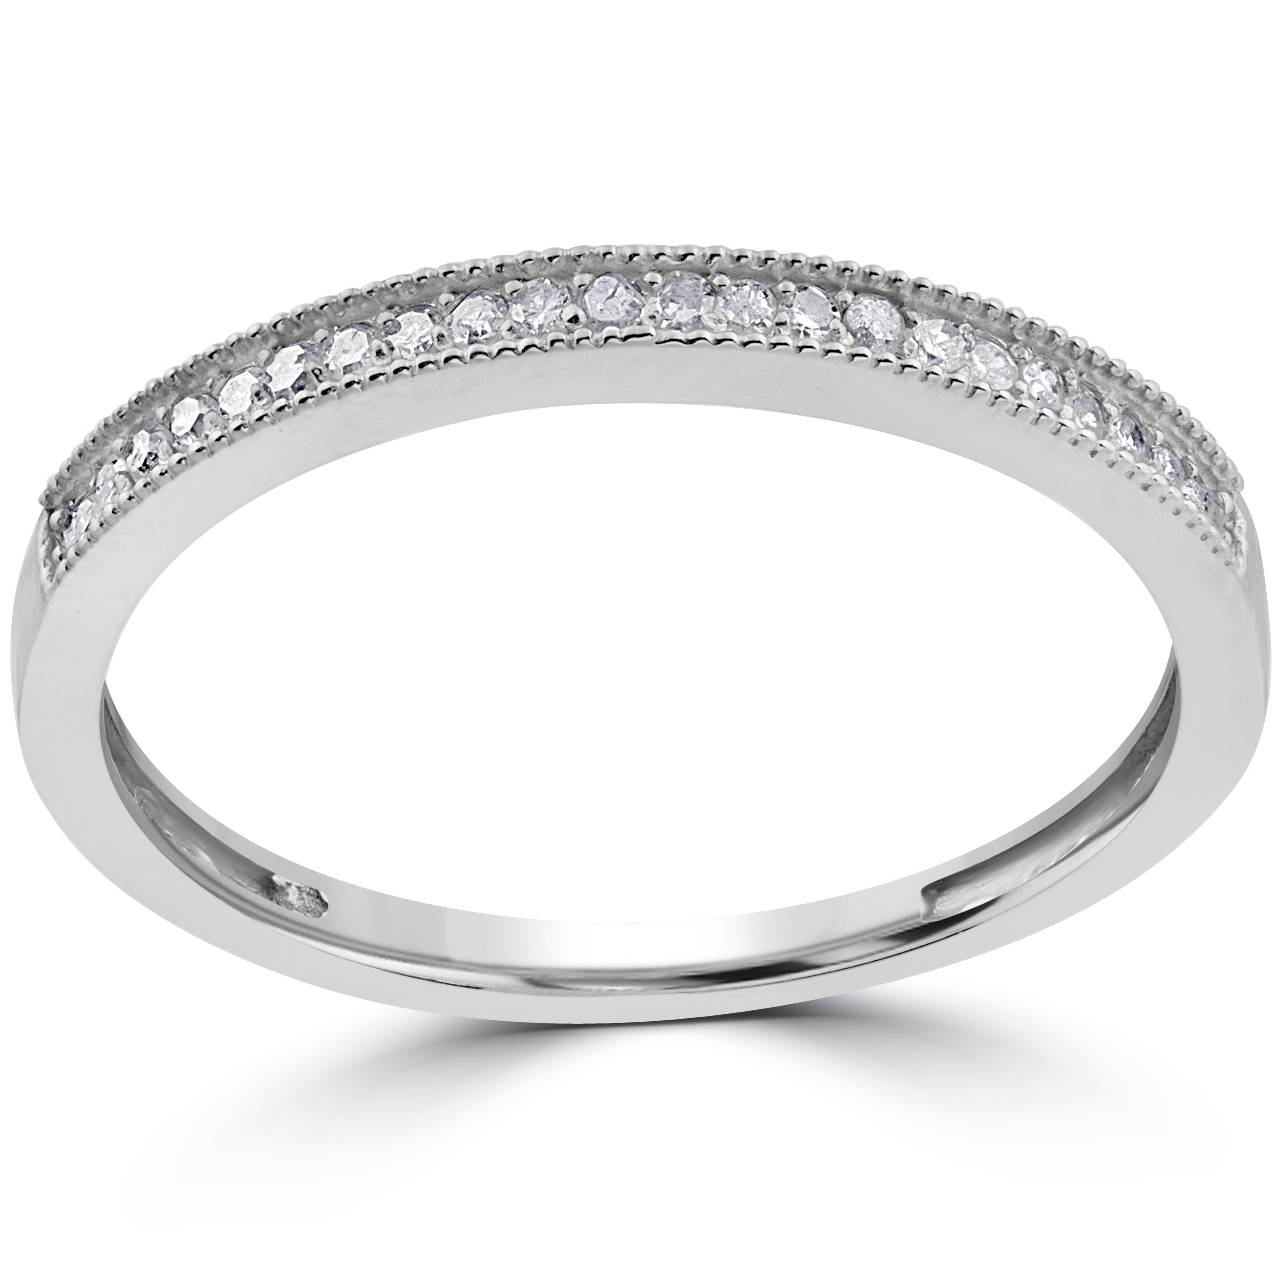 1 8ct wedding ring 10k white gold ebay